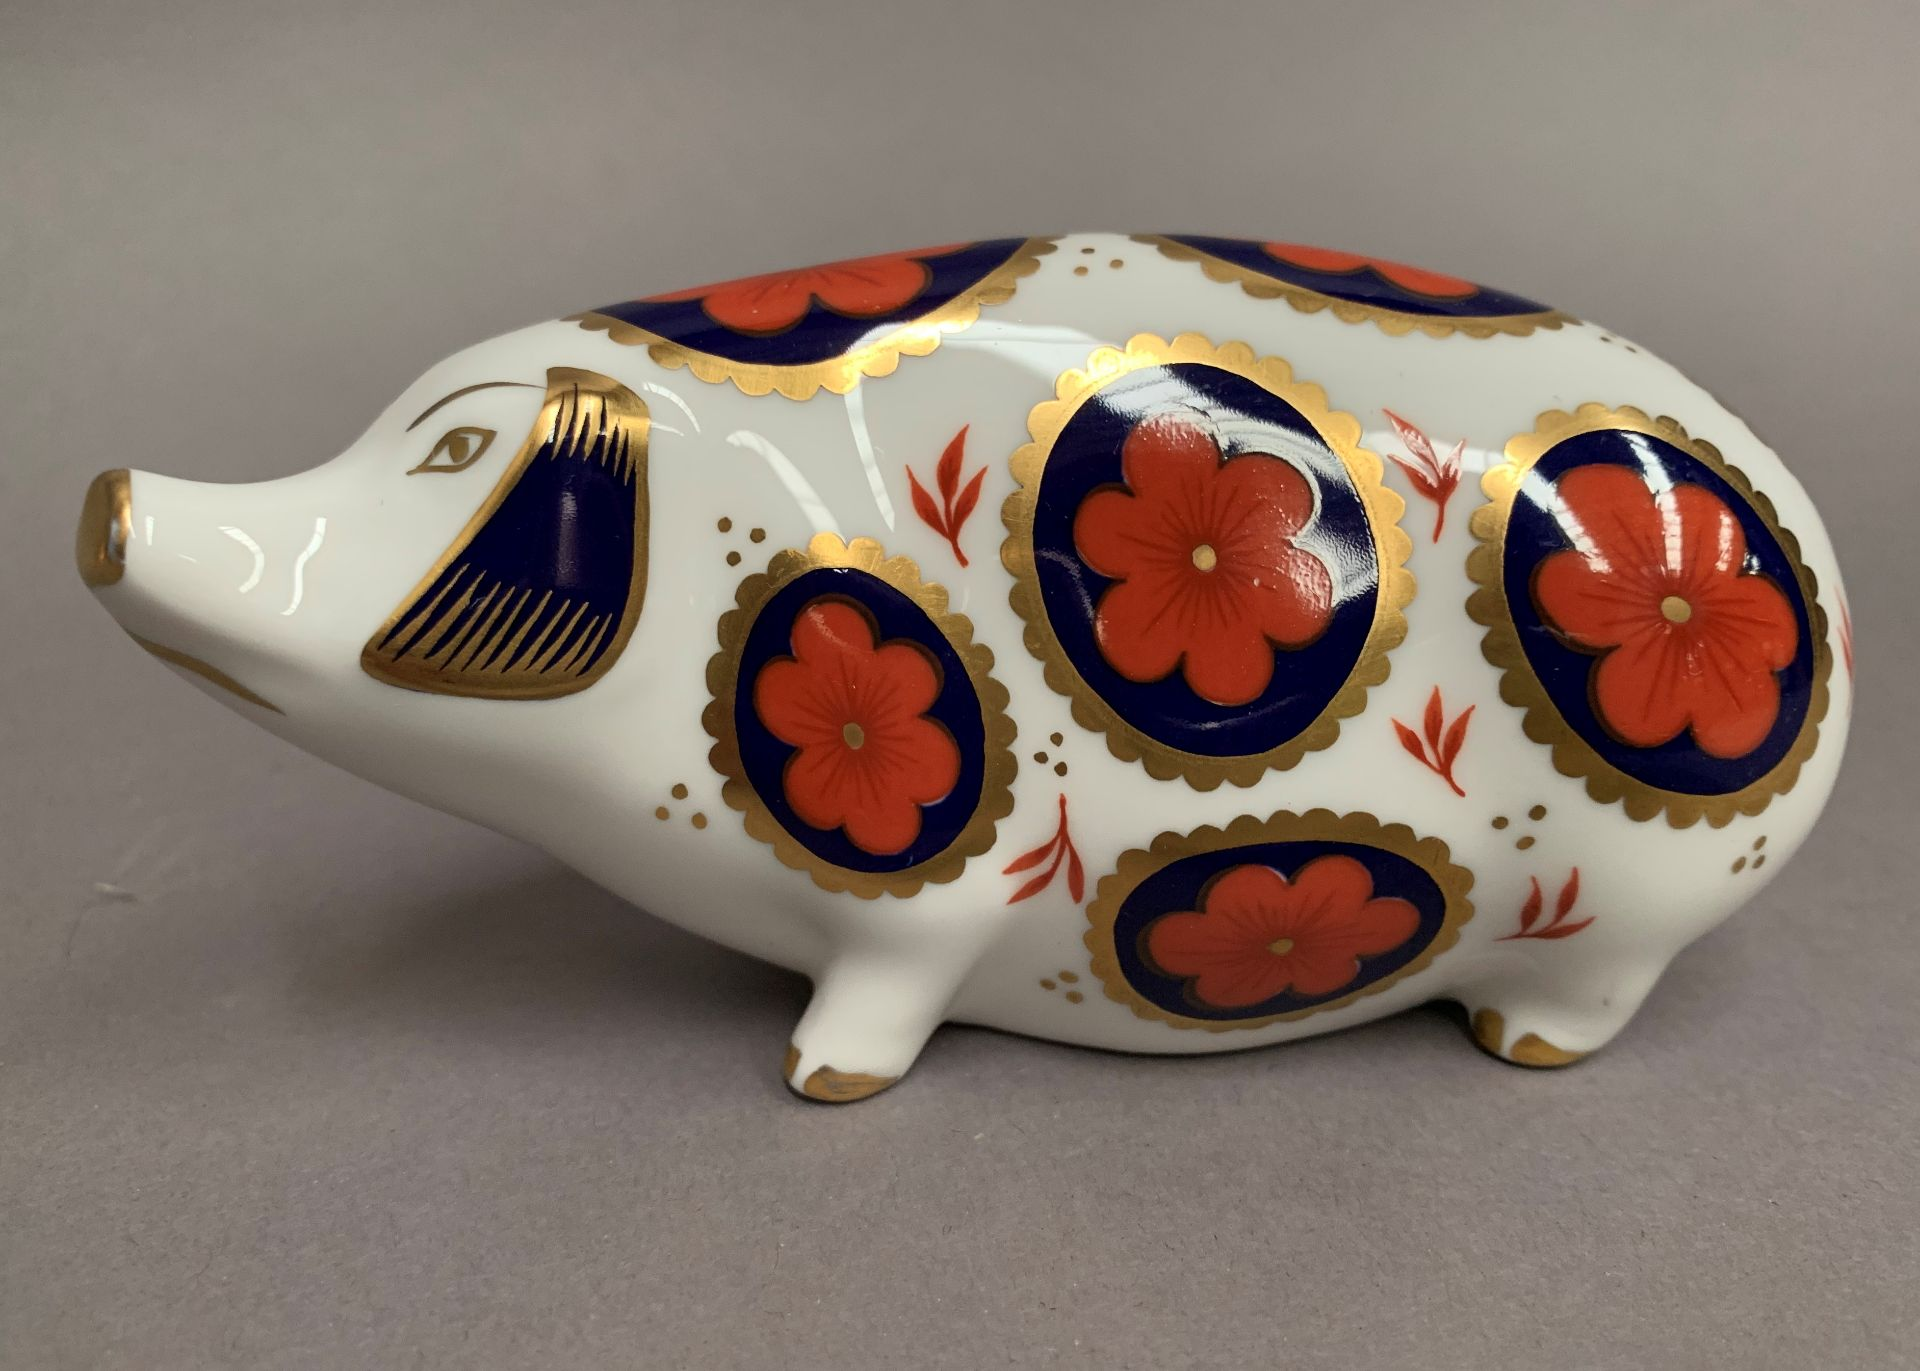 Lot 2 - Royal Crown Derby paperweight modelled as a pig, LIV,